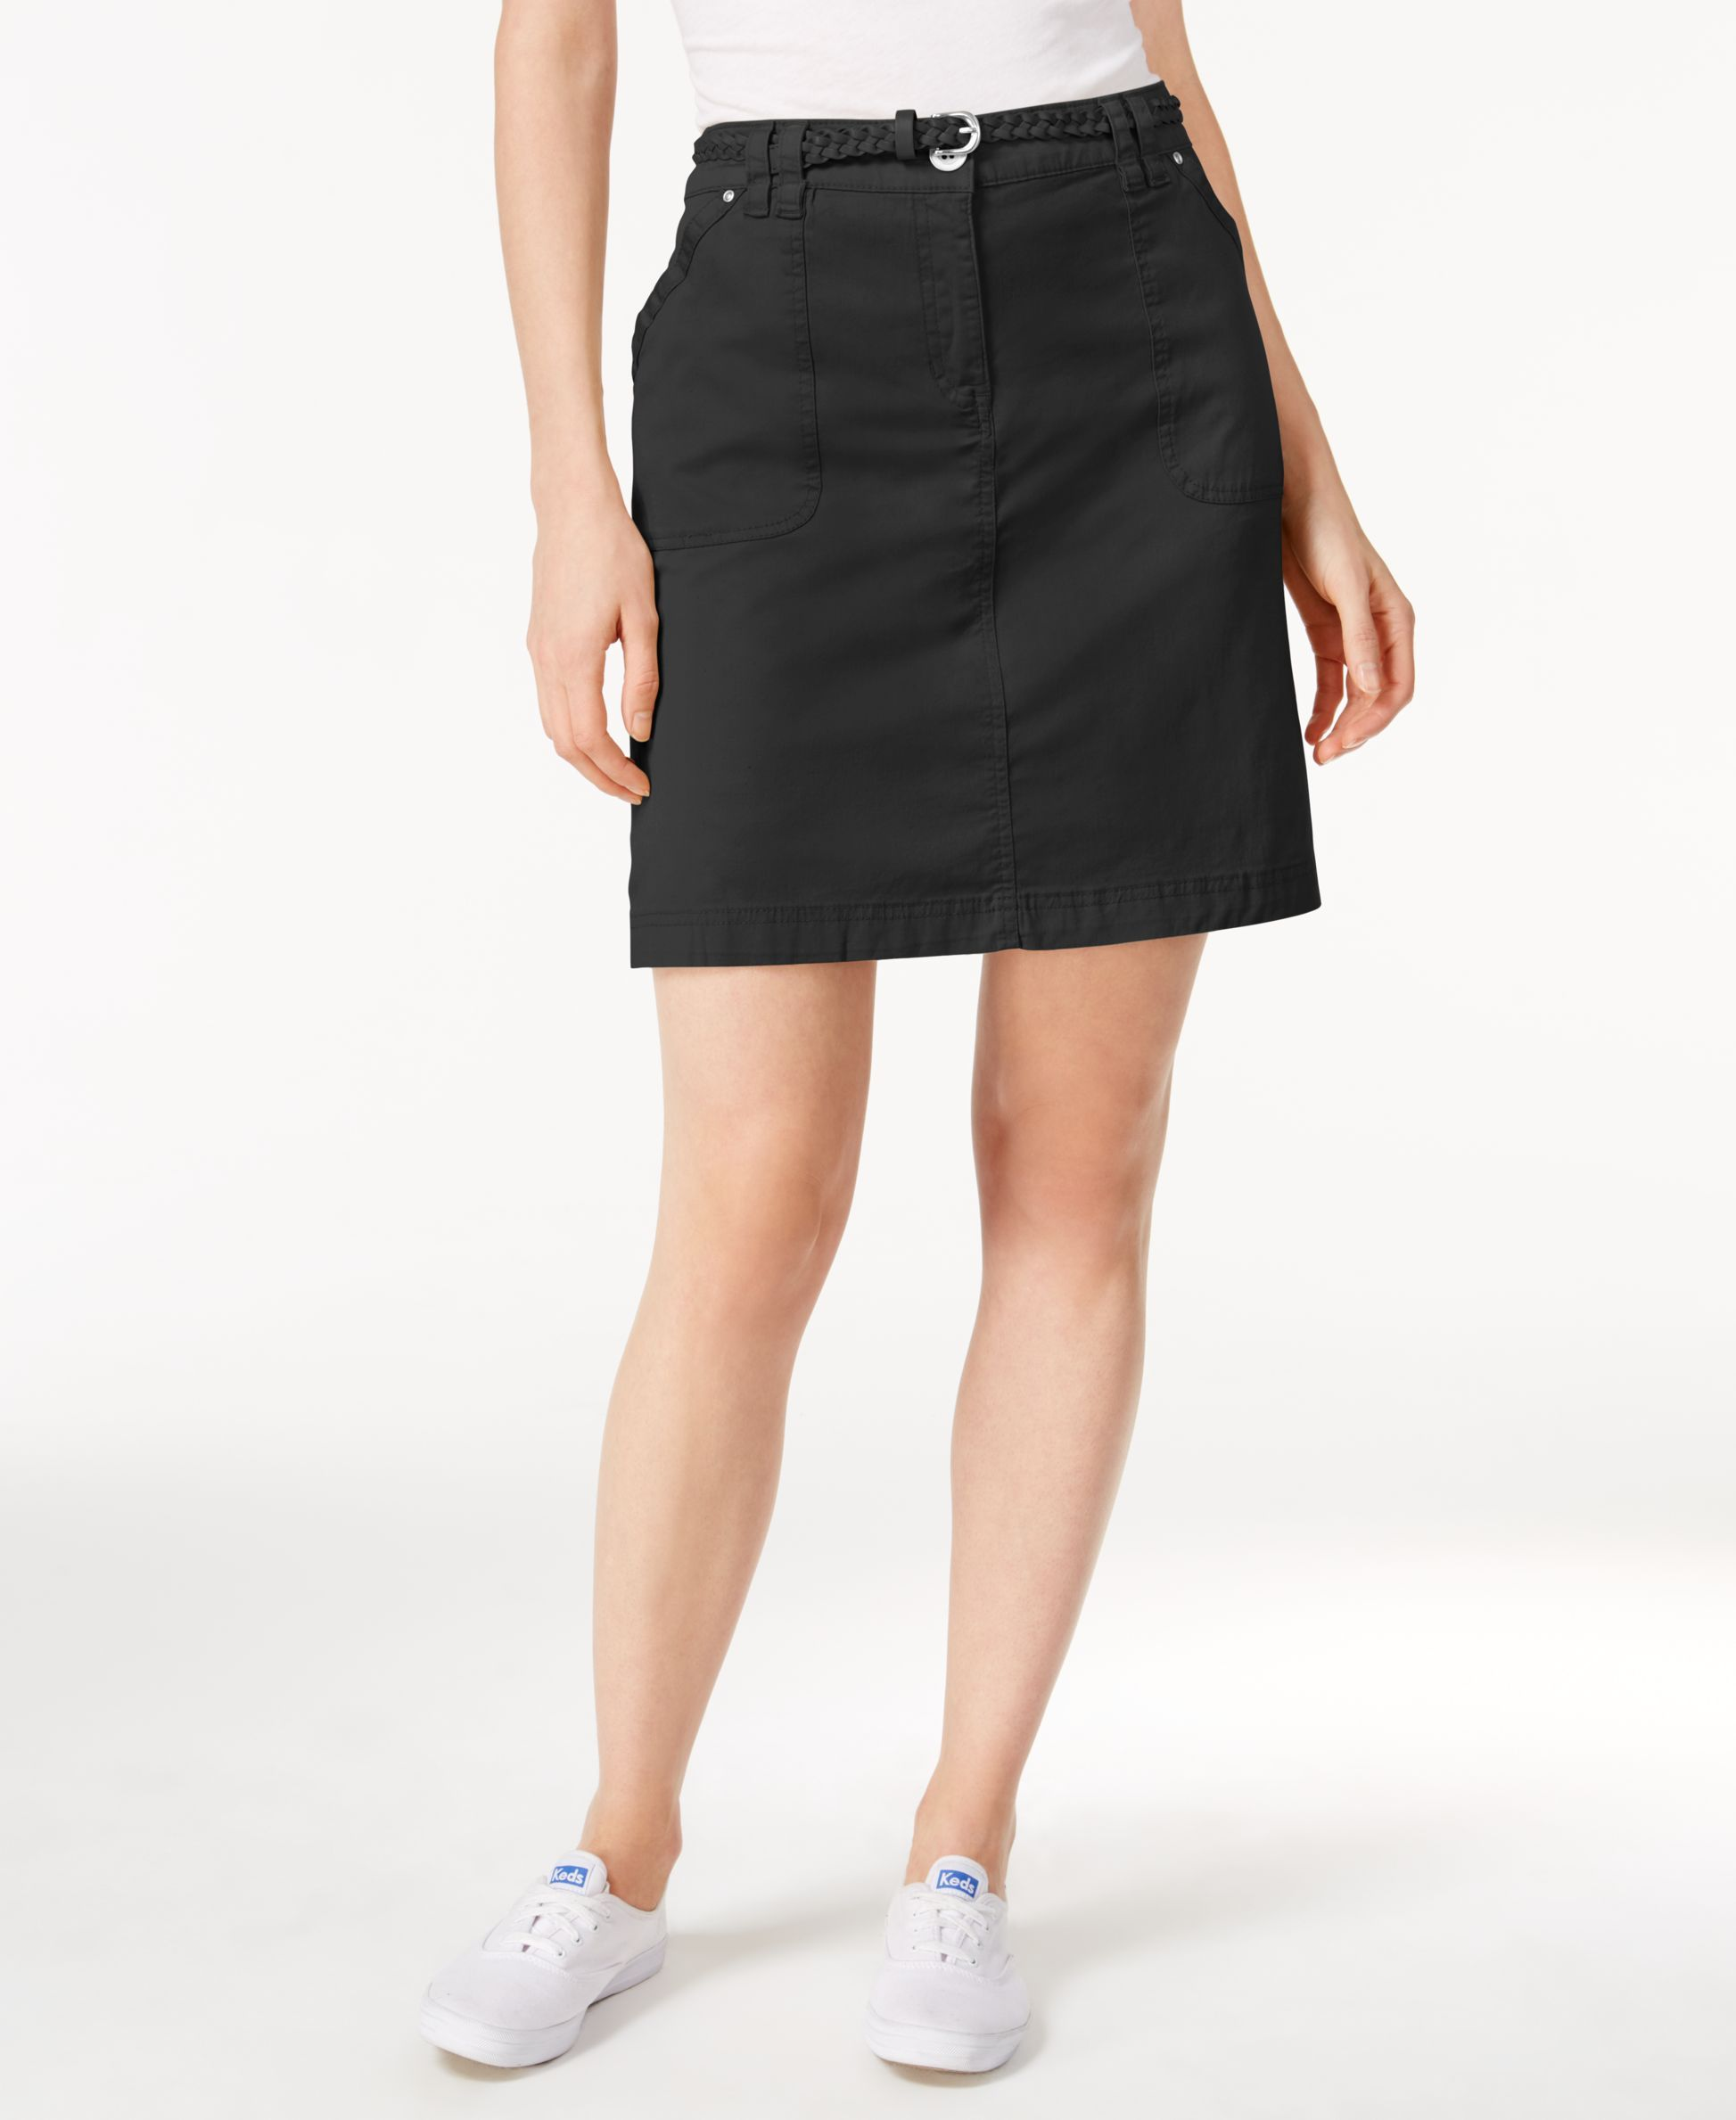 9931752d56 Karen Scott Belted Skort, Only at Macy's | Products | Skirt belt ...